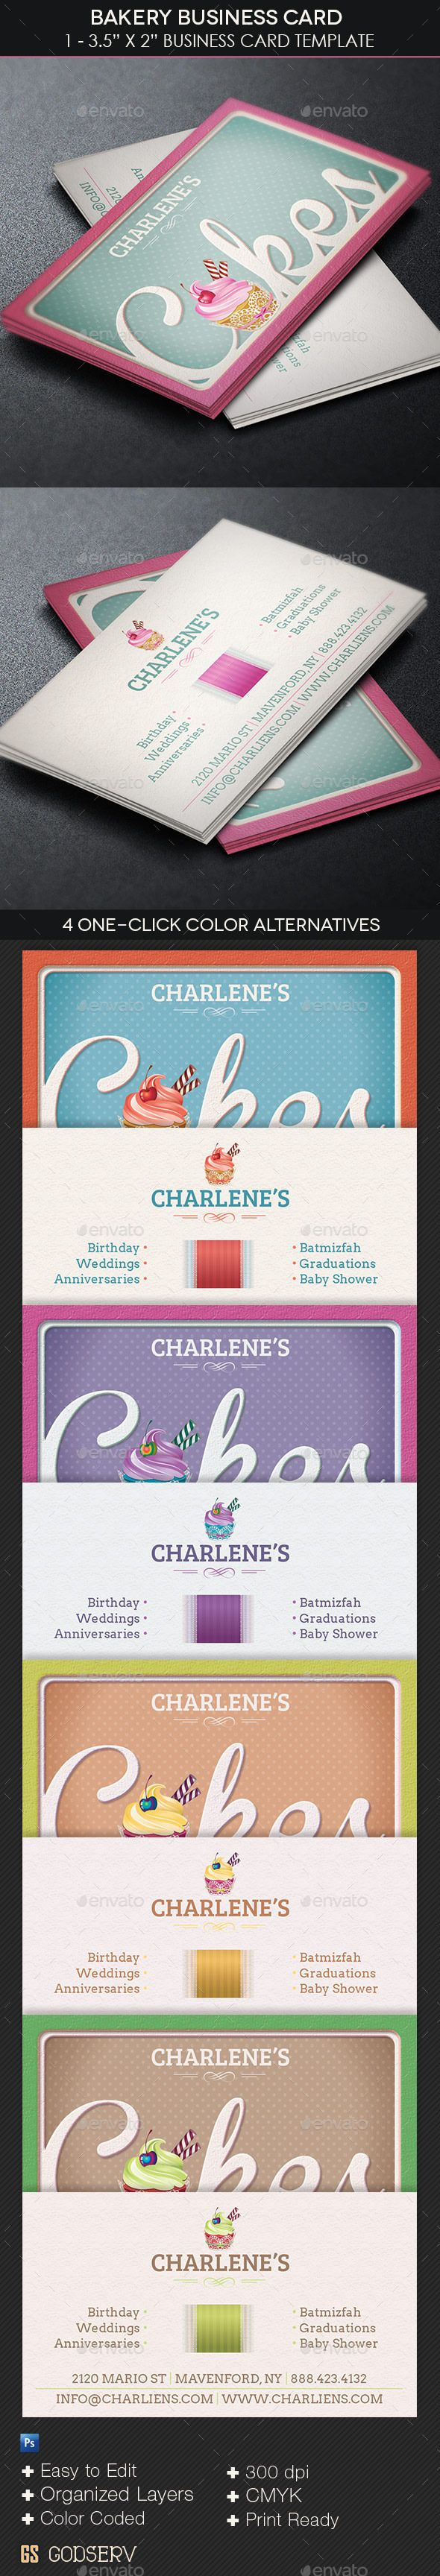 773 best business cards images on pinterest business card bakery business card template magicingreecefo Choice Image